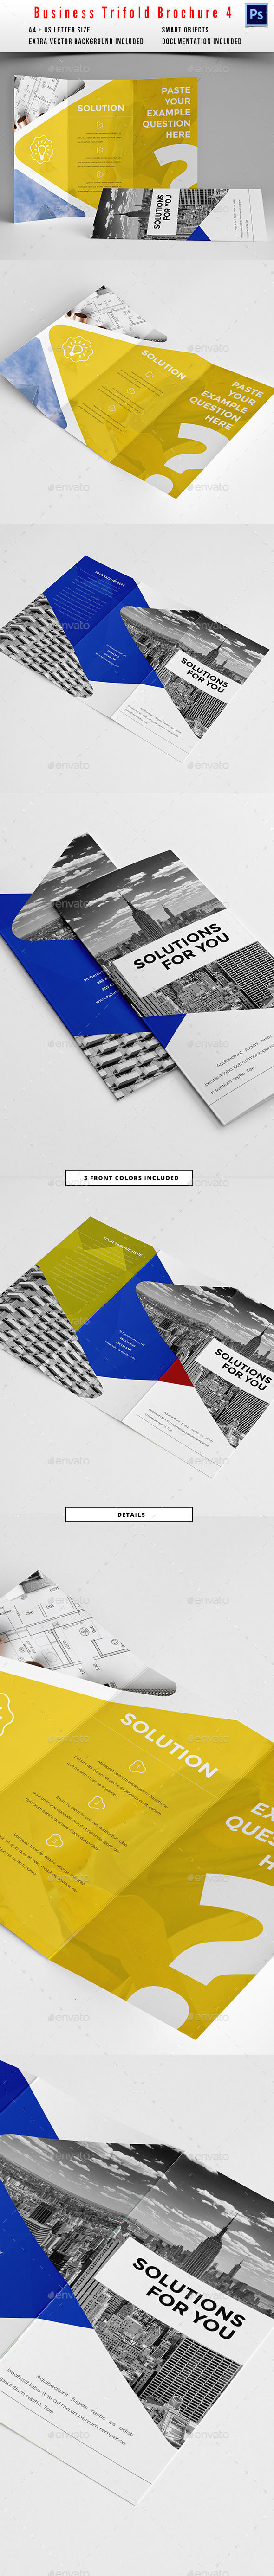 Clean Trifold Business Brochure 4 - Corporate Brochures